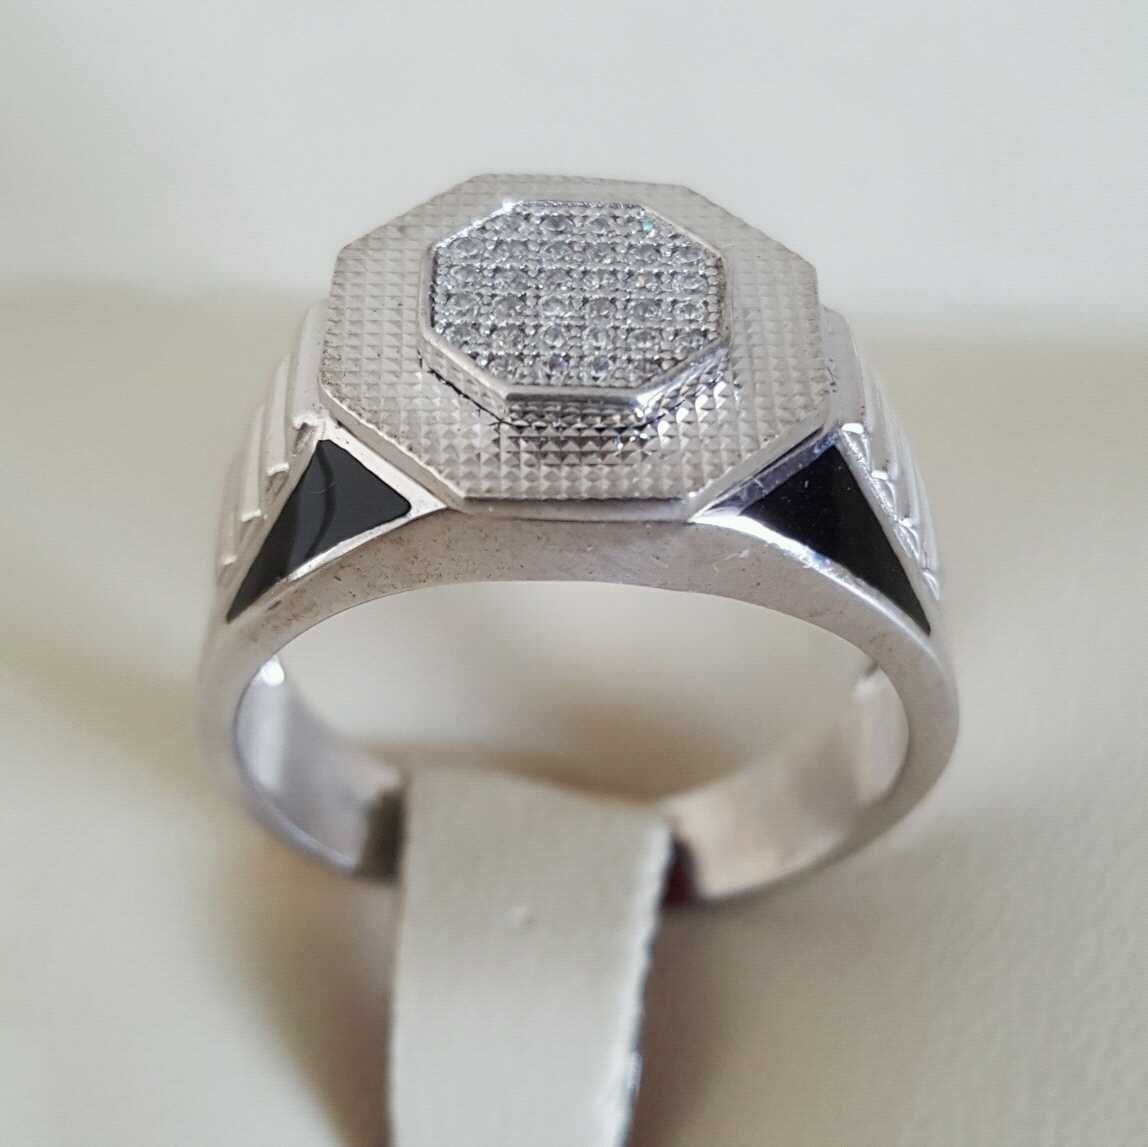 Pure Silver 925 Men Rings Italian Rings Imported From Dubai 8 natural gemstones pakistan + 925 silver jewelry online